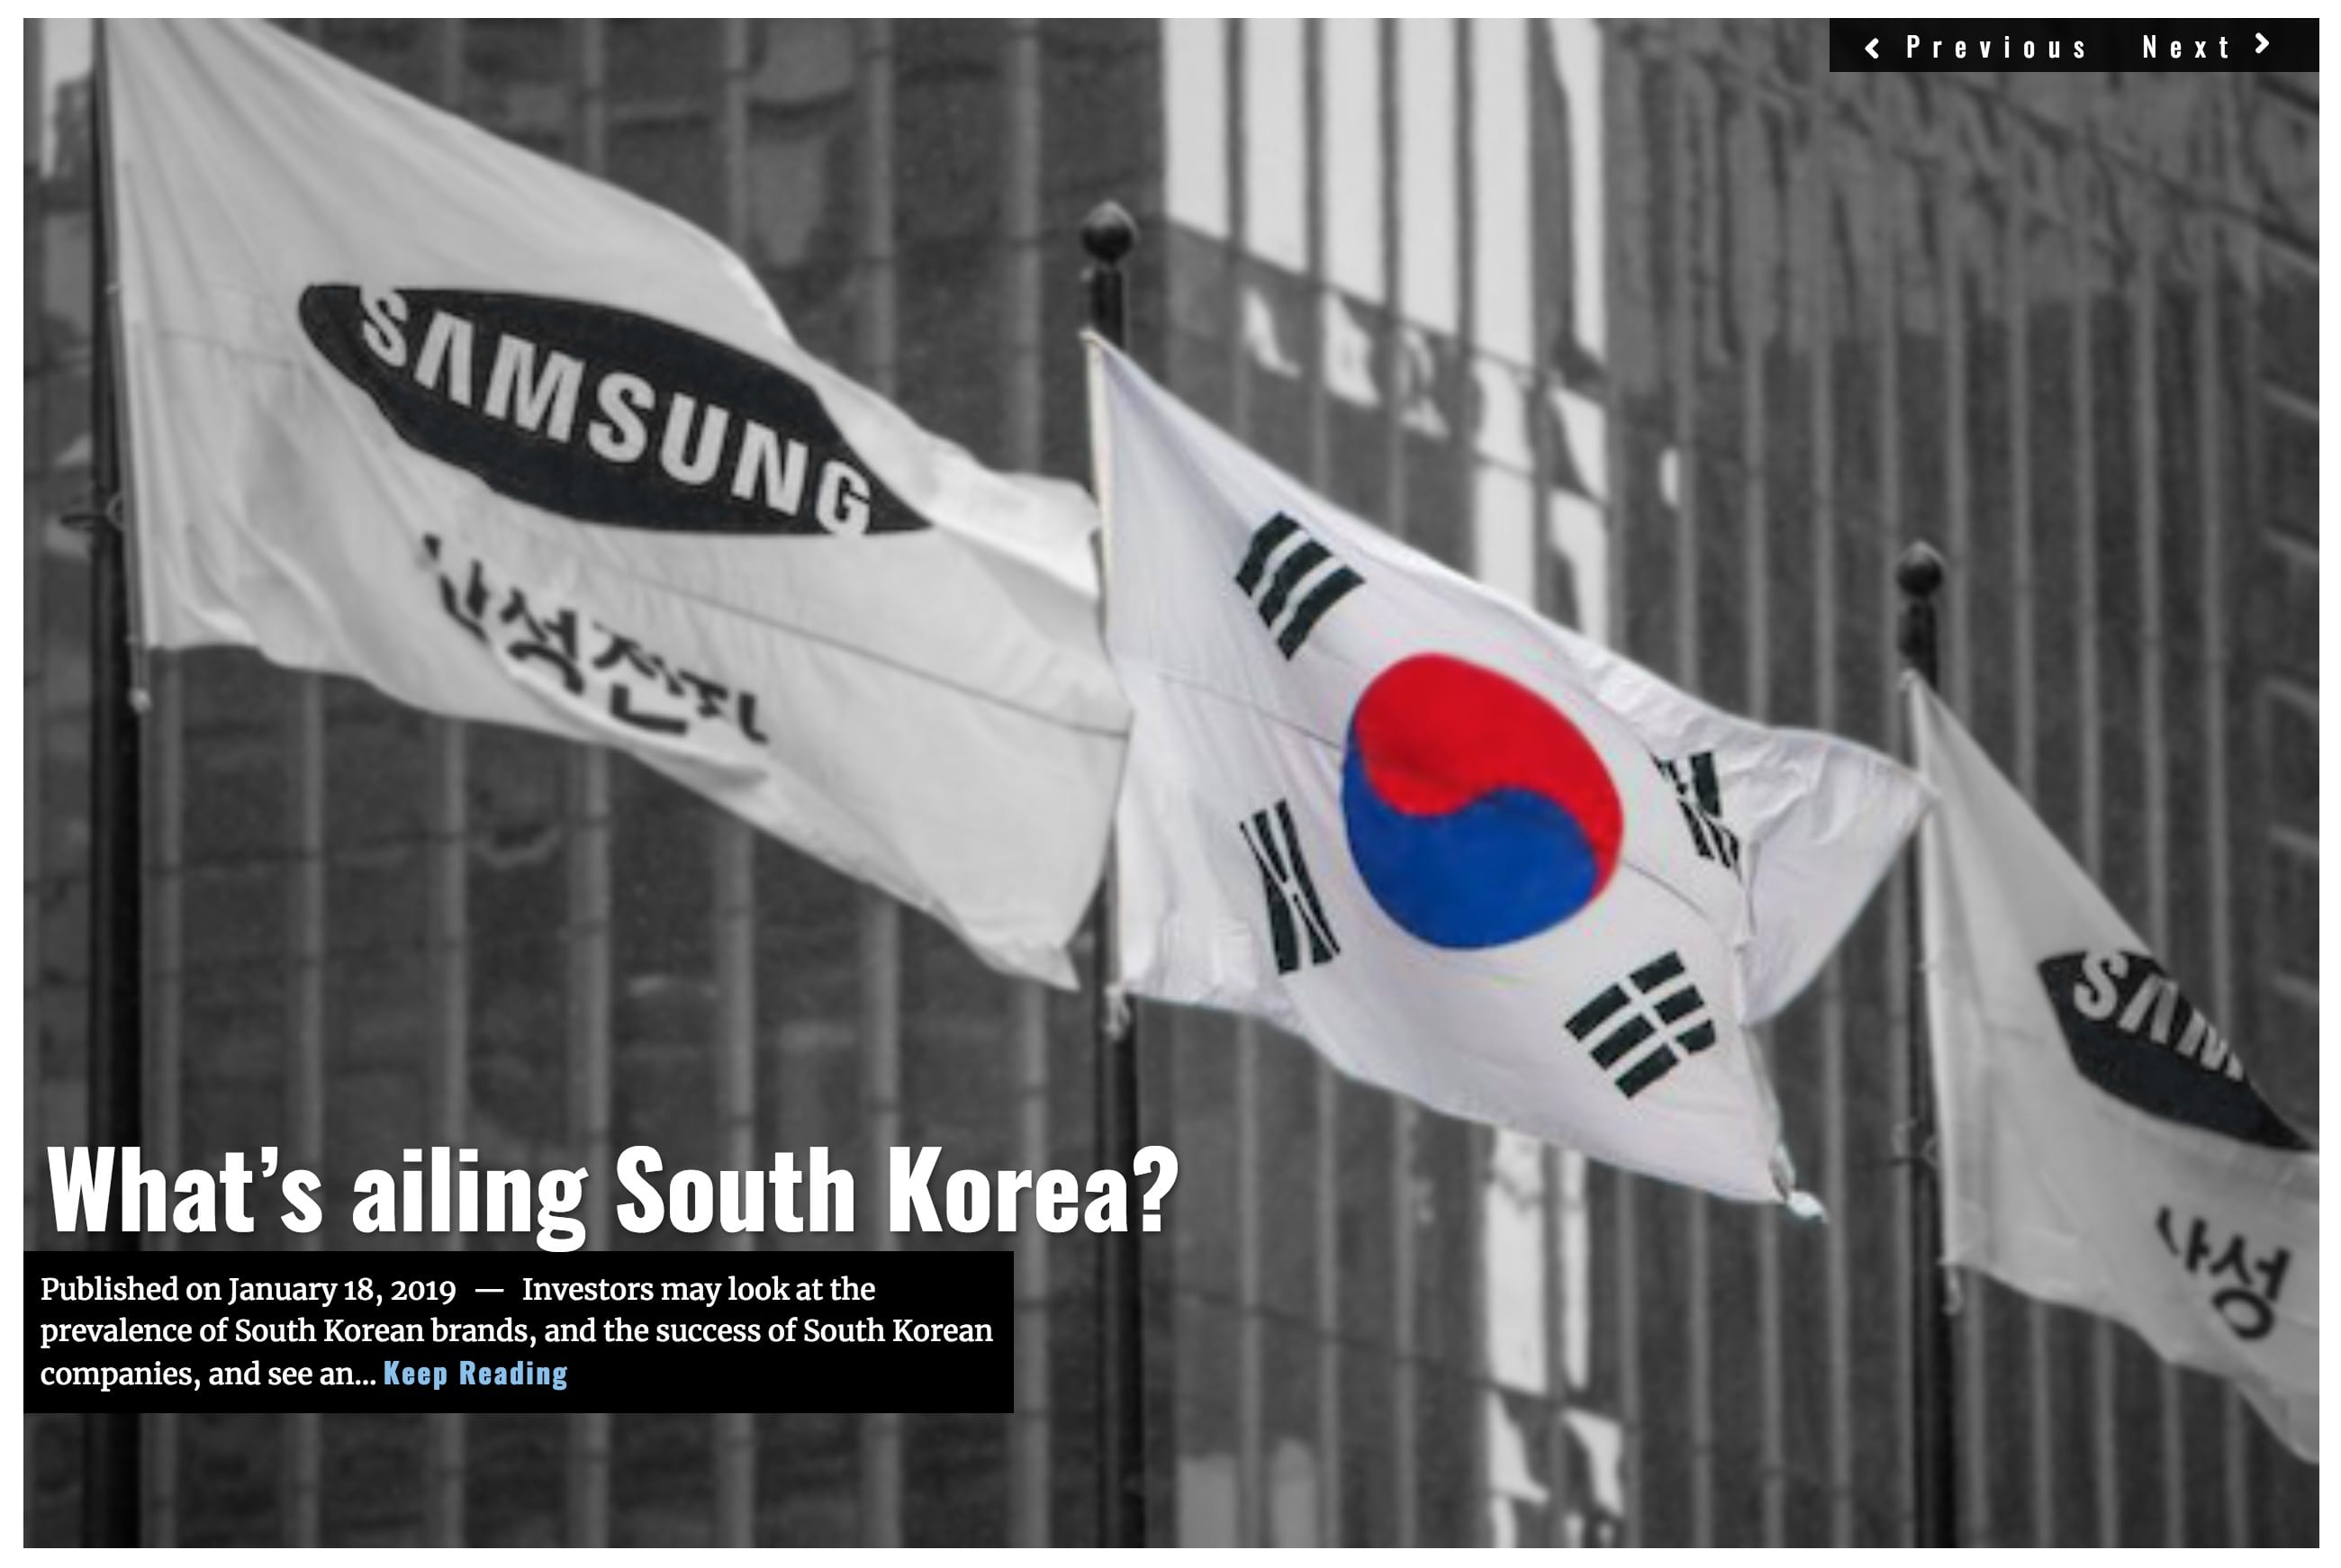 Image Lima Charlie News Headline Whats ailing South Korea JAN 18 2019